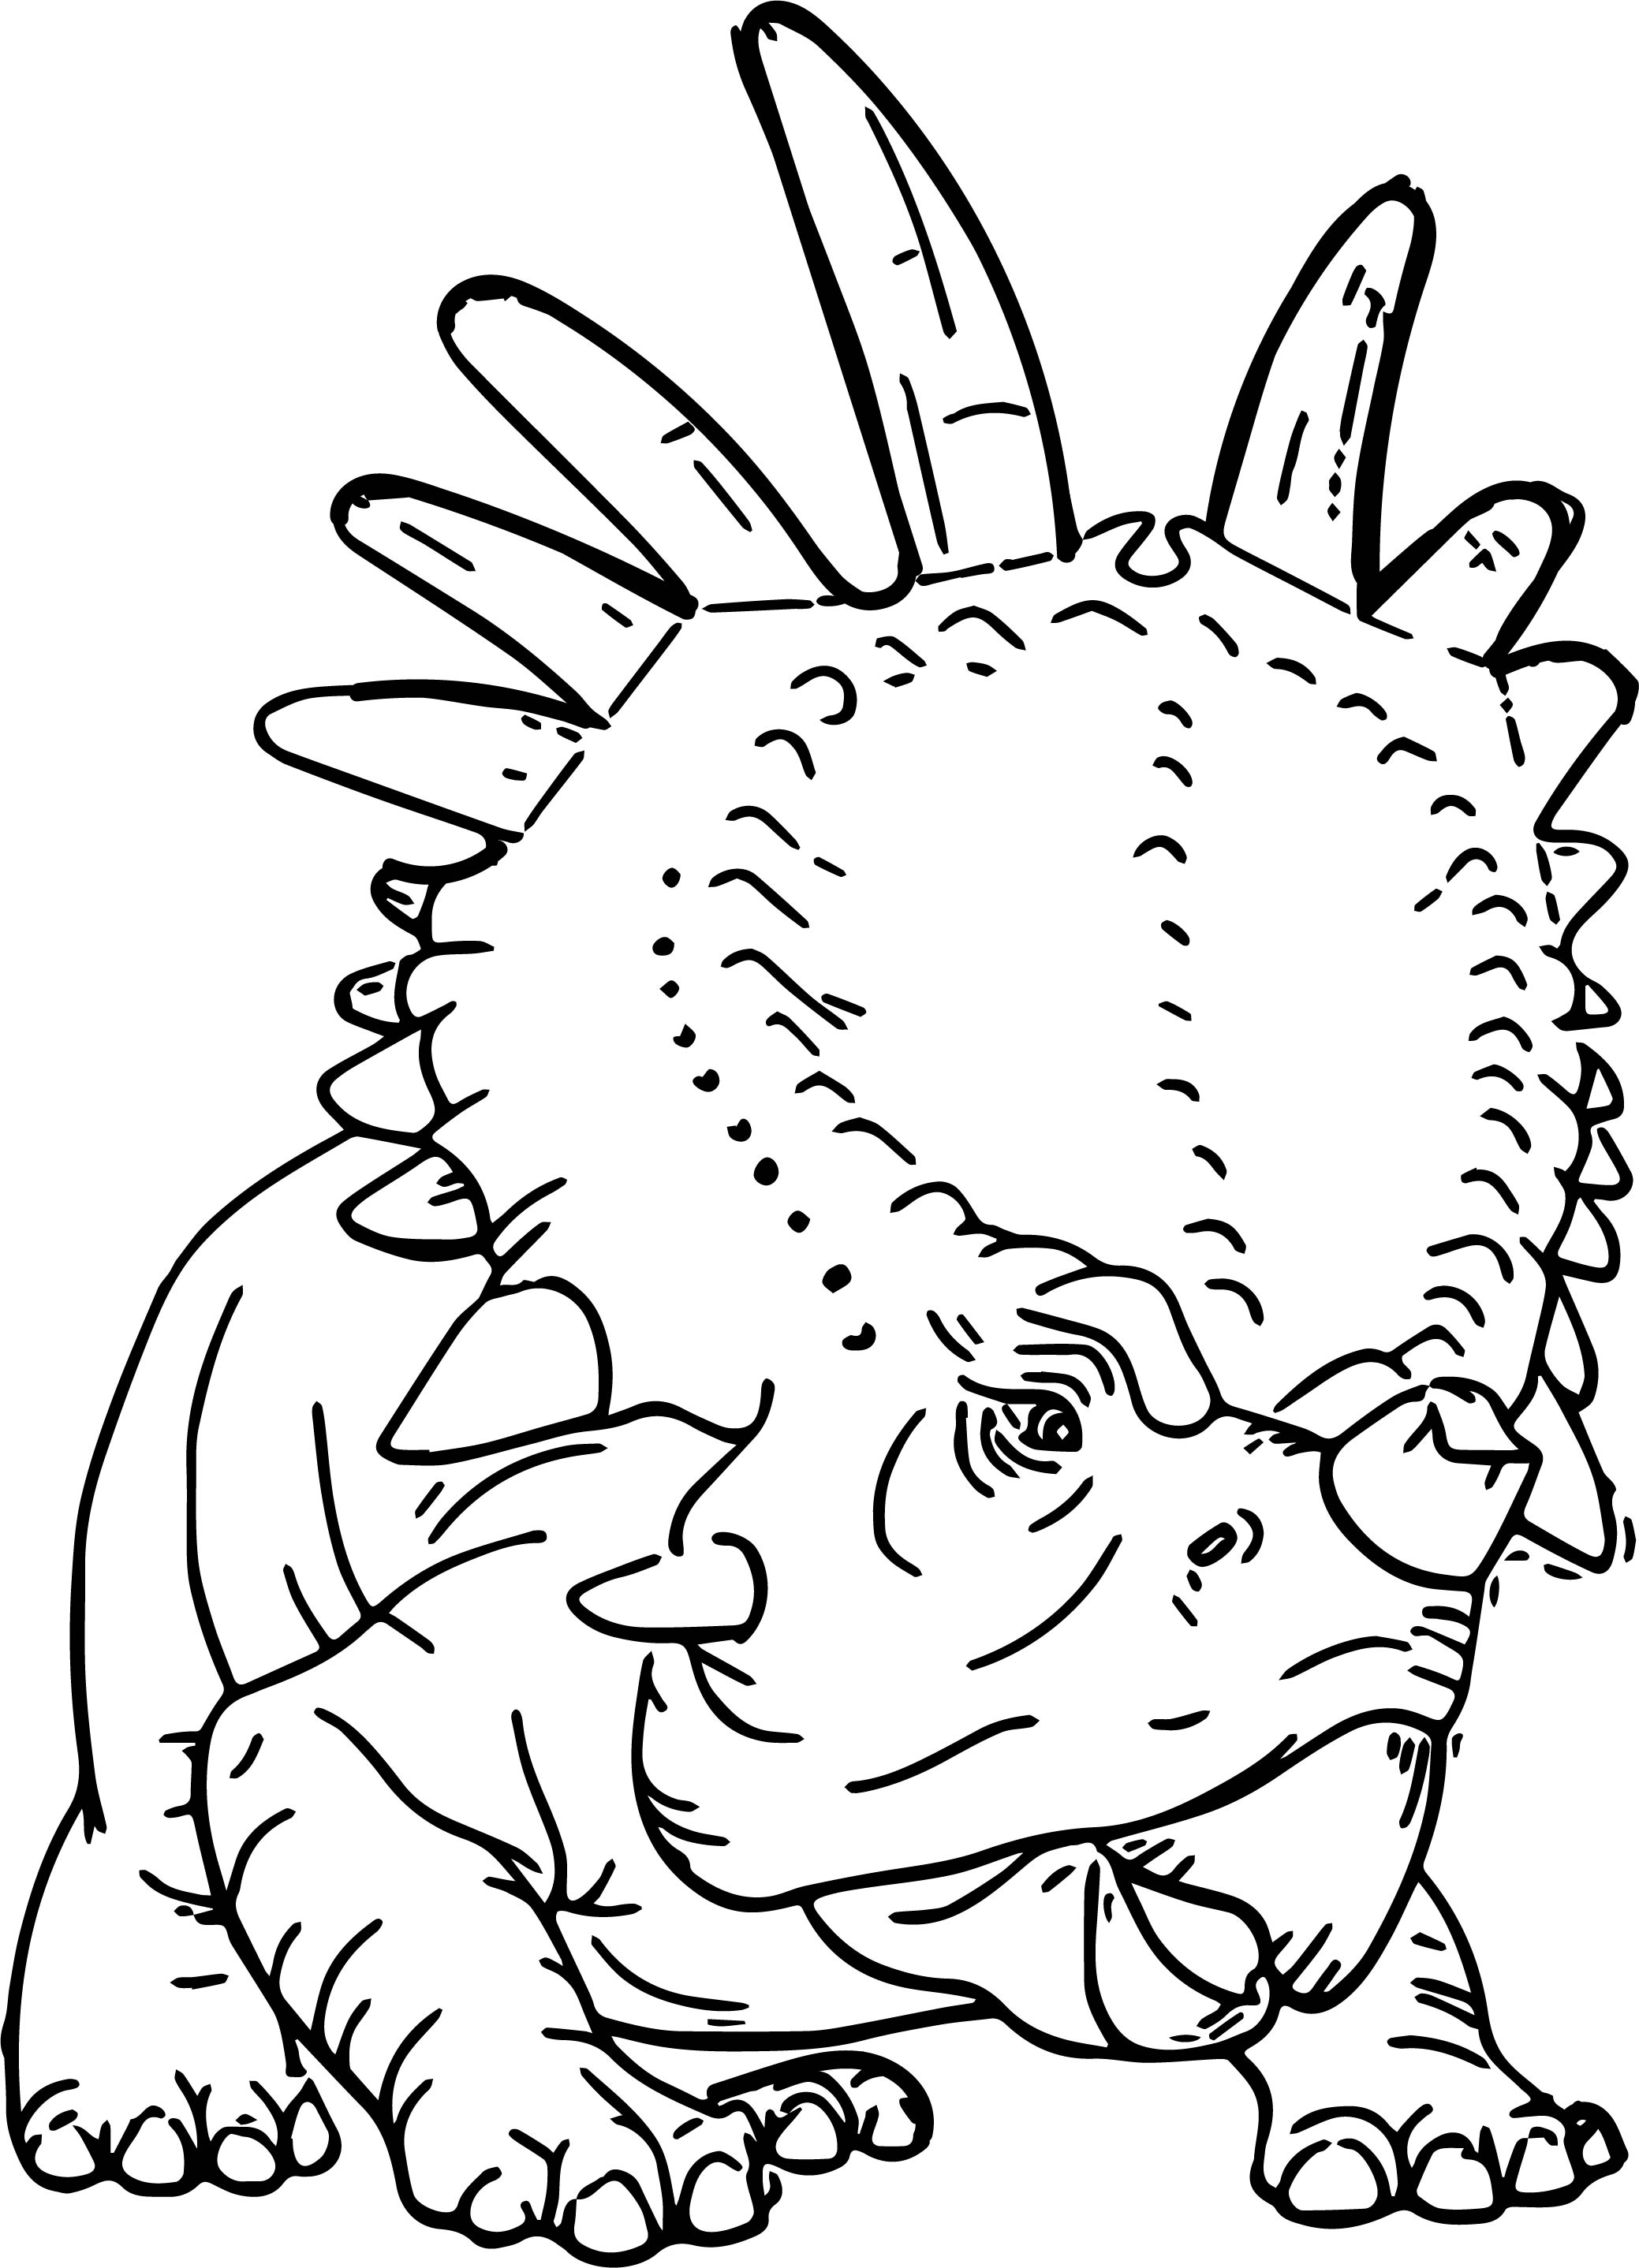 disney dinosaur coloring pages - photo#18